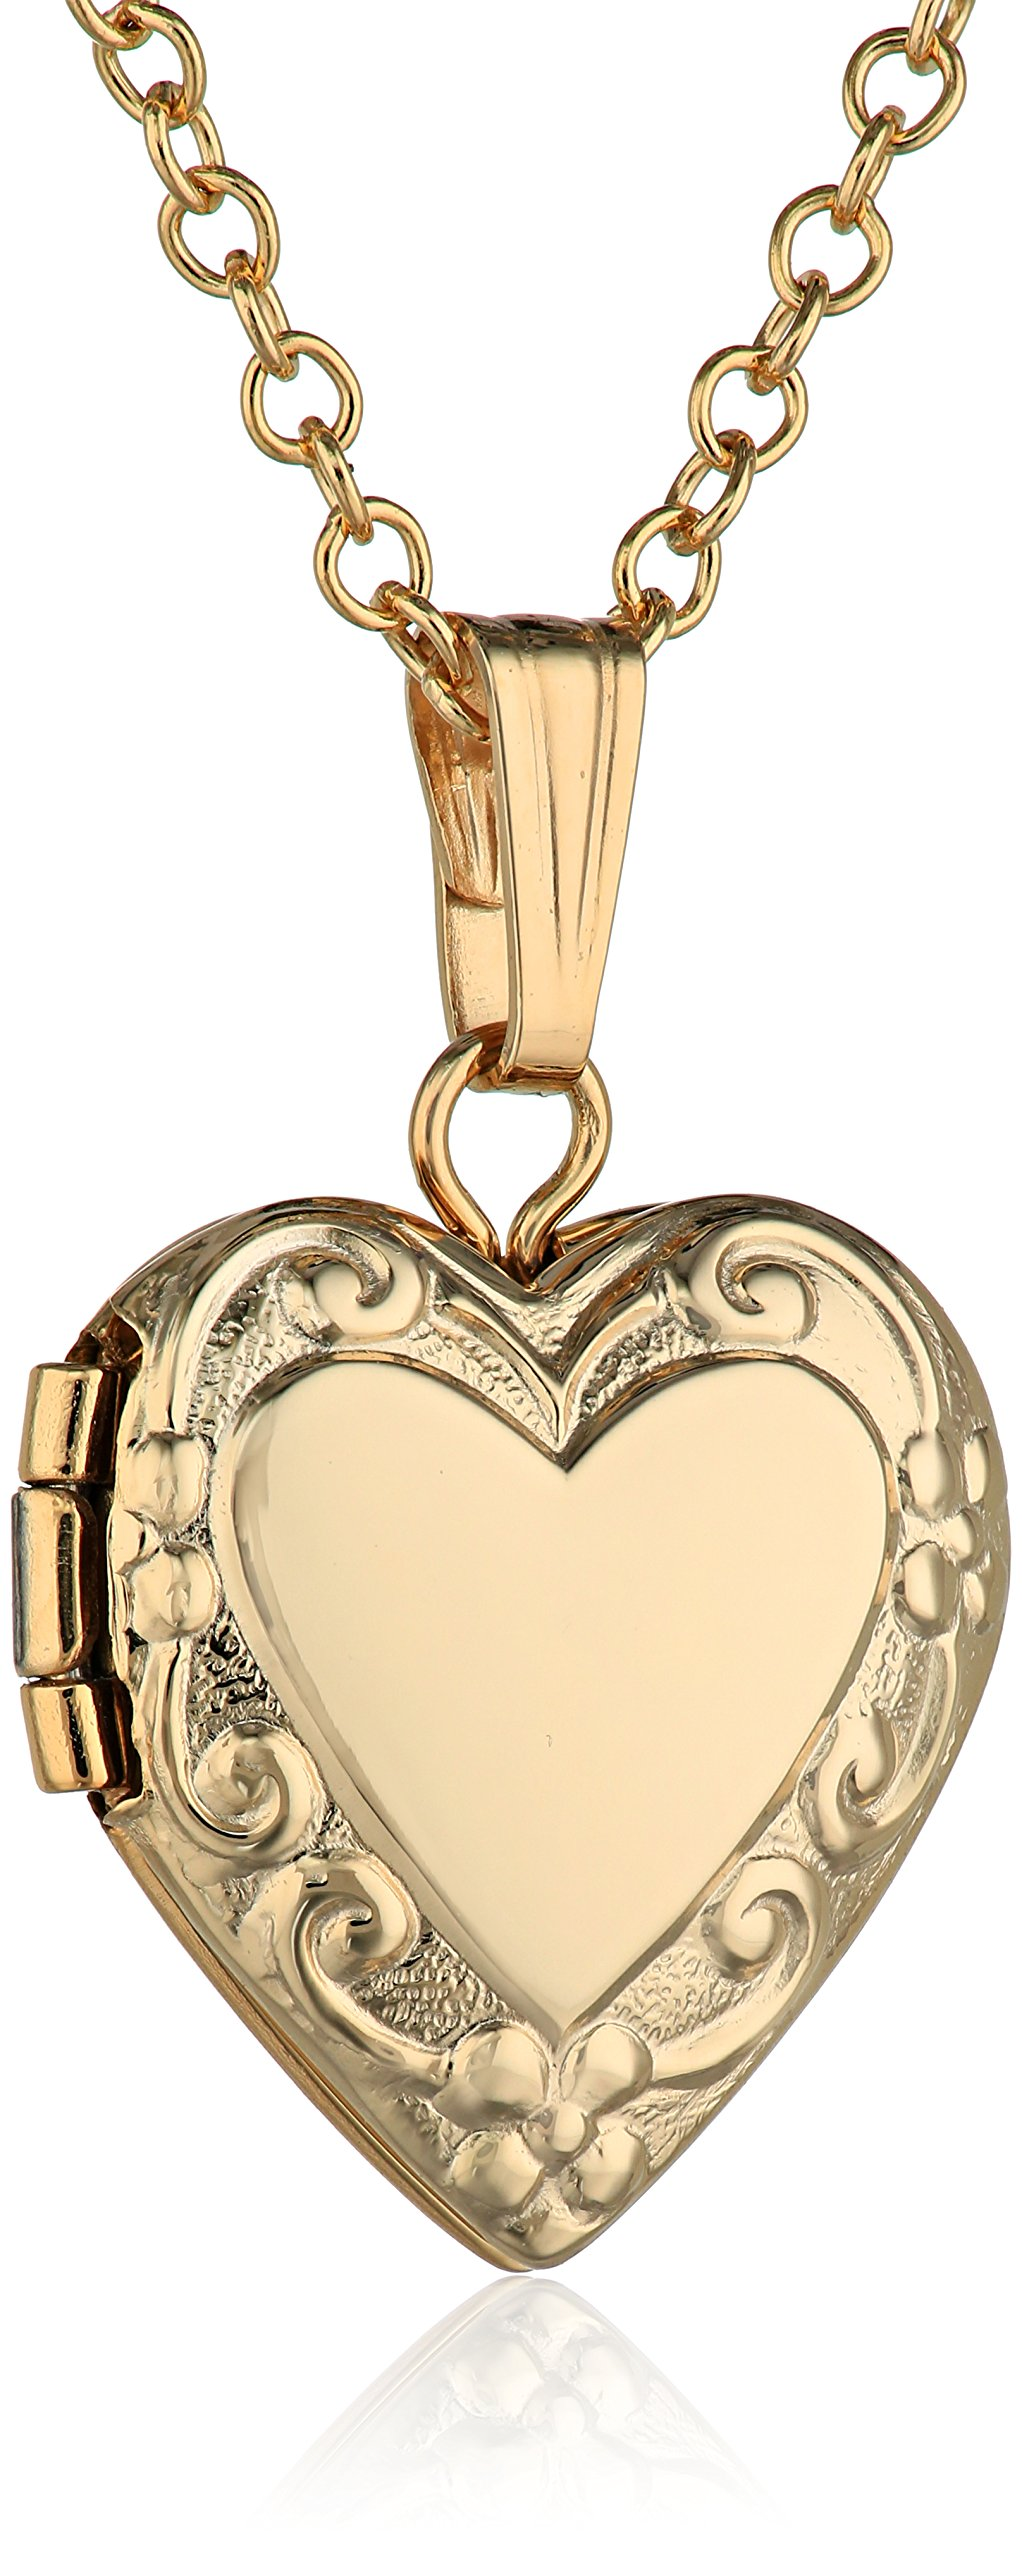 Galleon  Children's 14k Yellow Goldfilled Heart Locket. Bangle Bracelets With Stones. White Gold Antique Wedding Rings. Stackable Bracelet. Weding Bands. Raw Cut Engagement Rings. Pearl Chains. Simple Anklets. Marquise Eternity Band